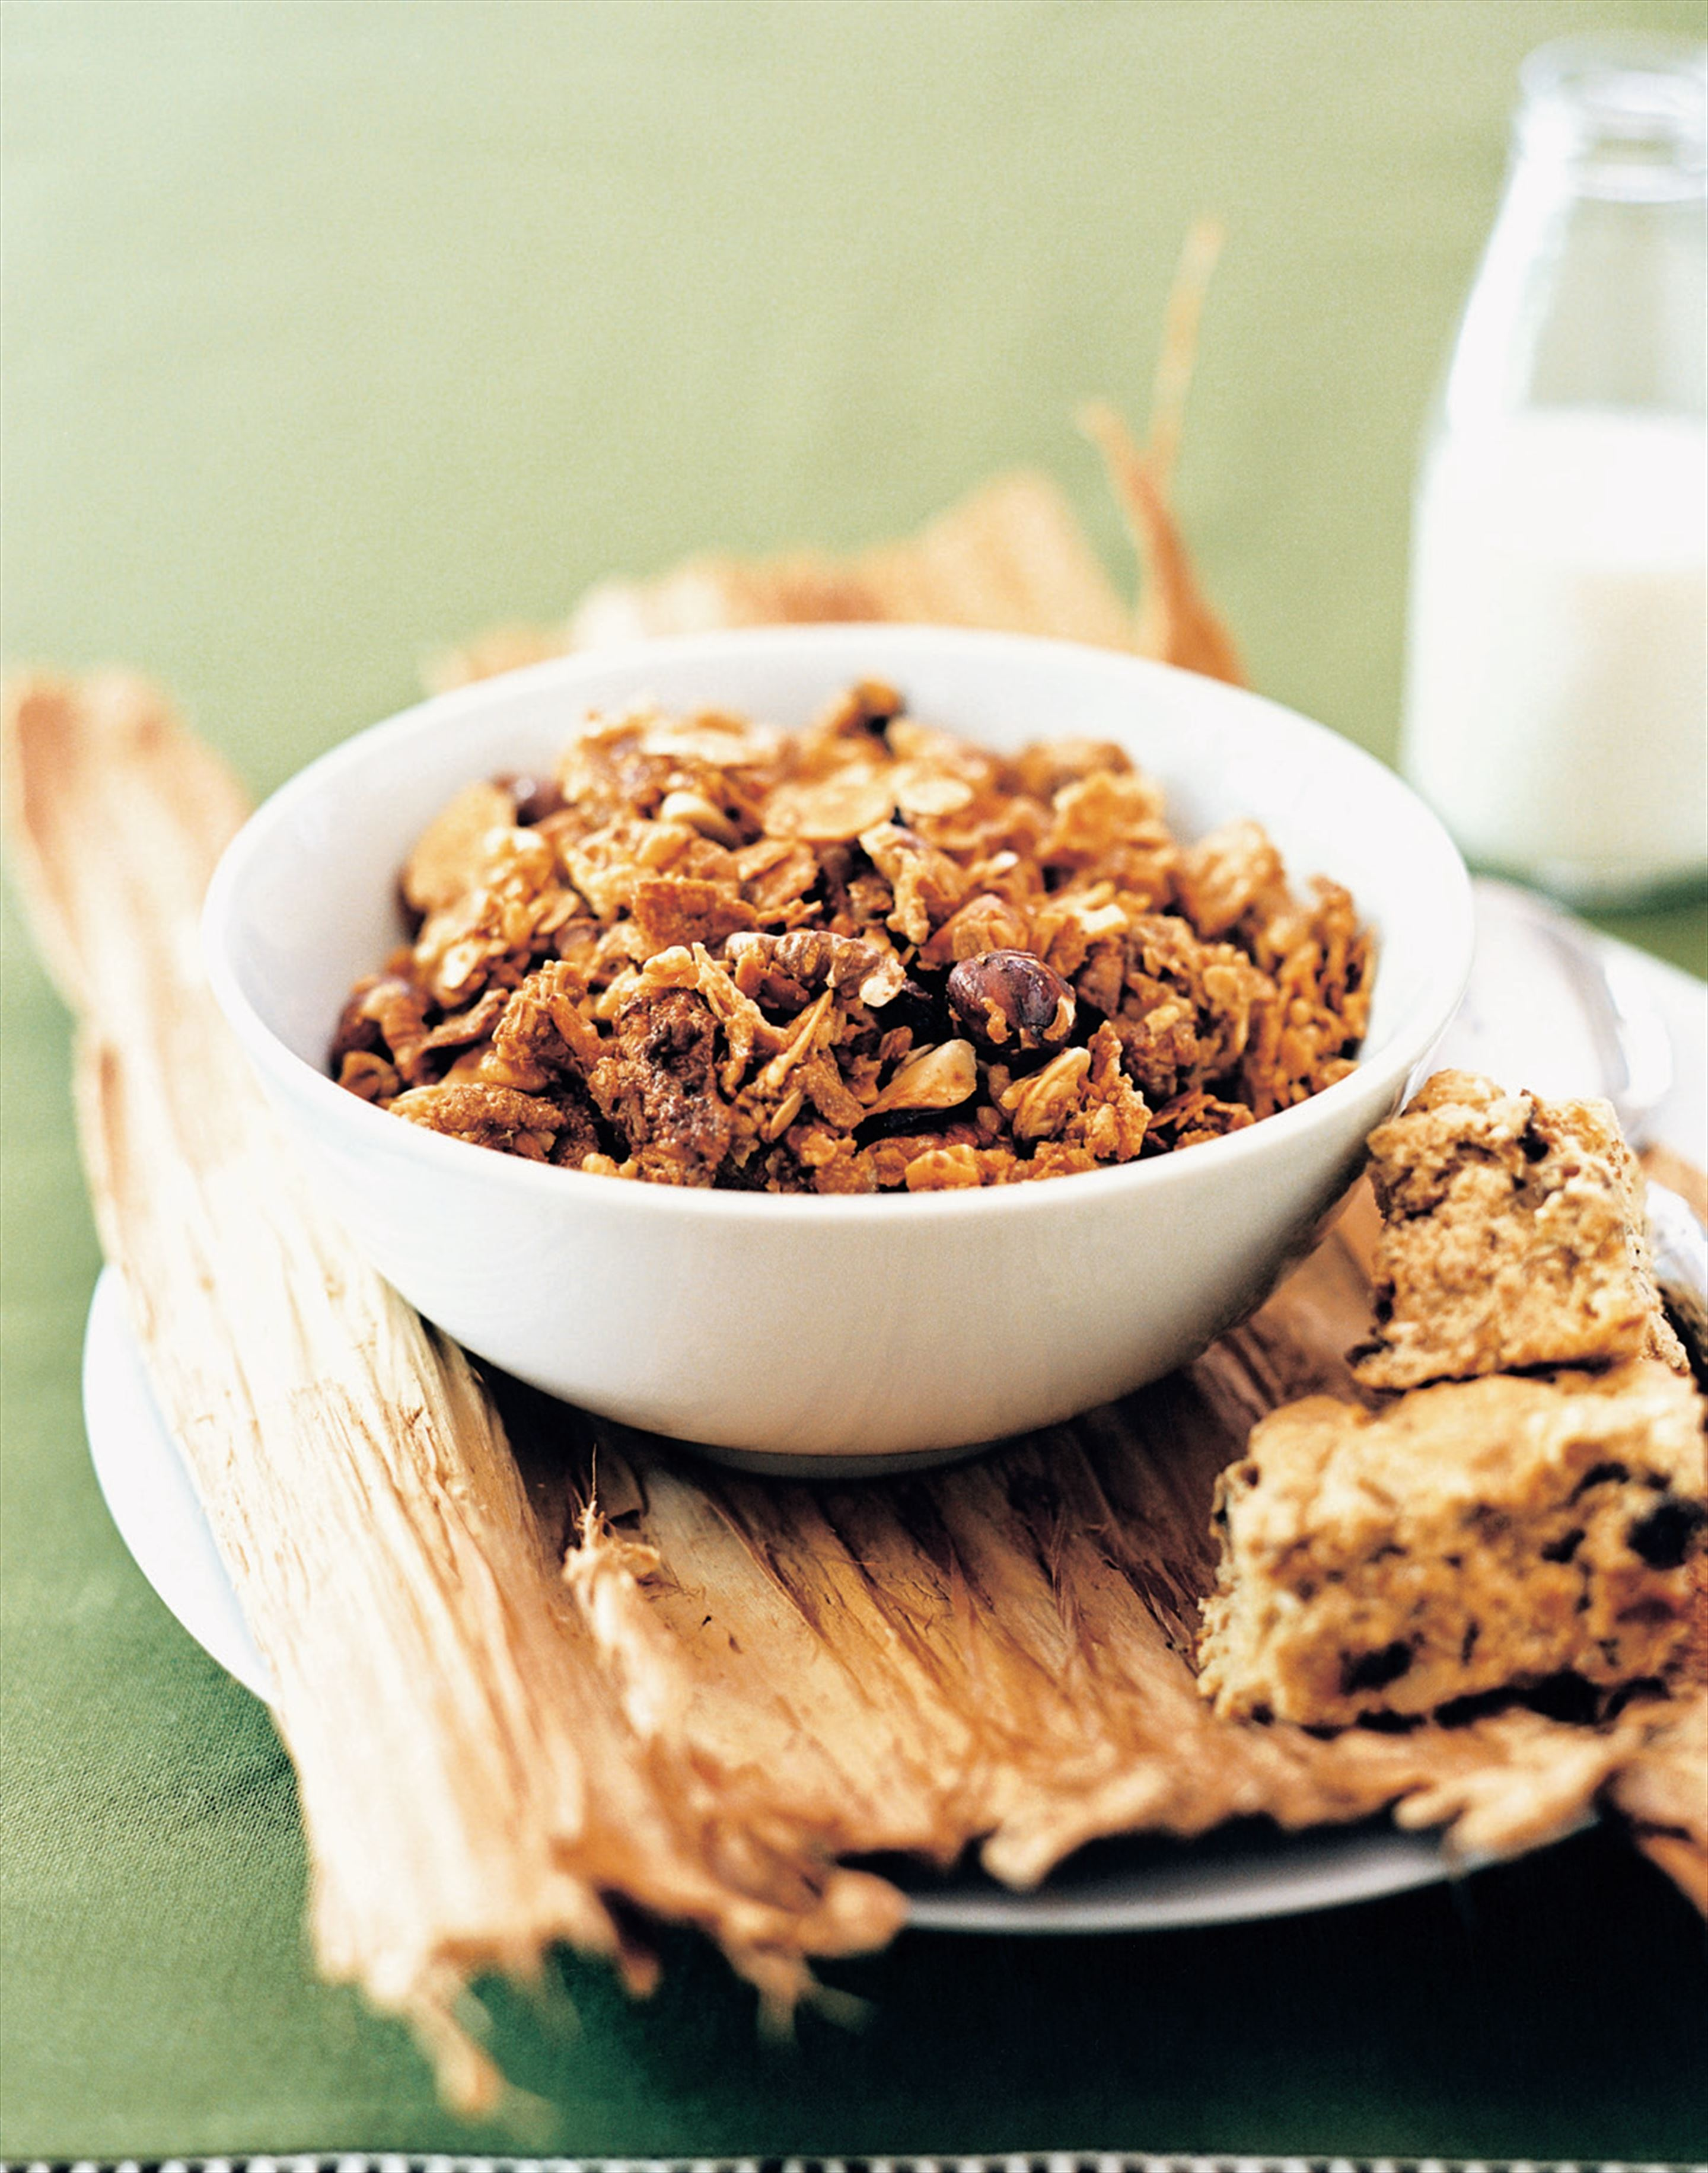 Low-fat granola